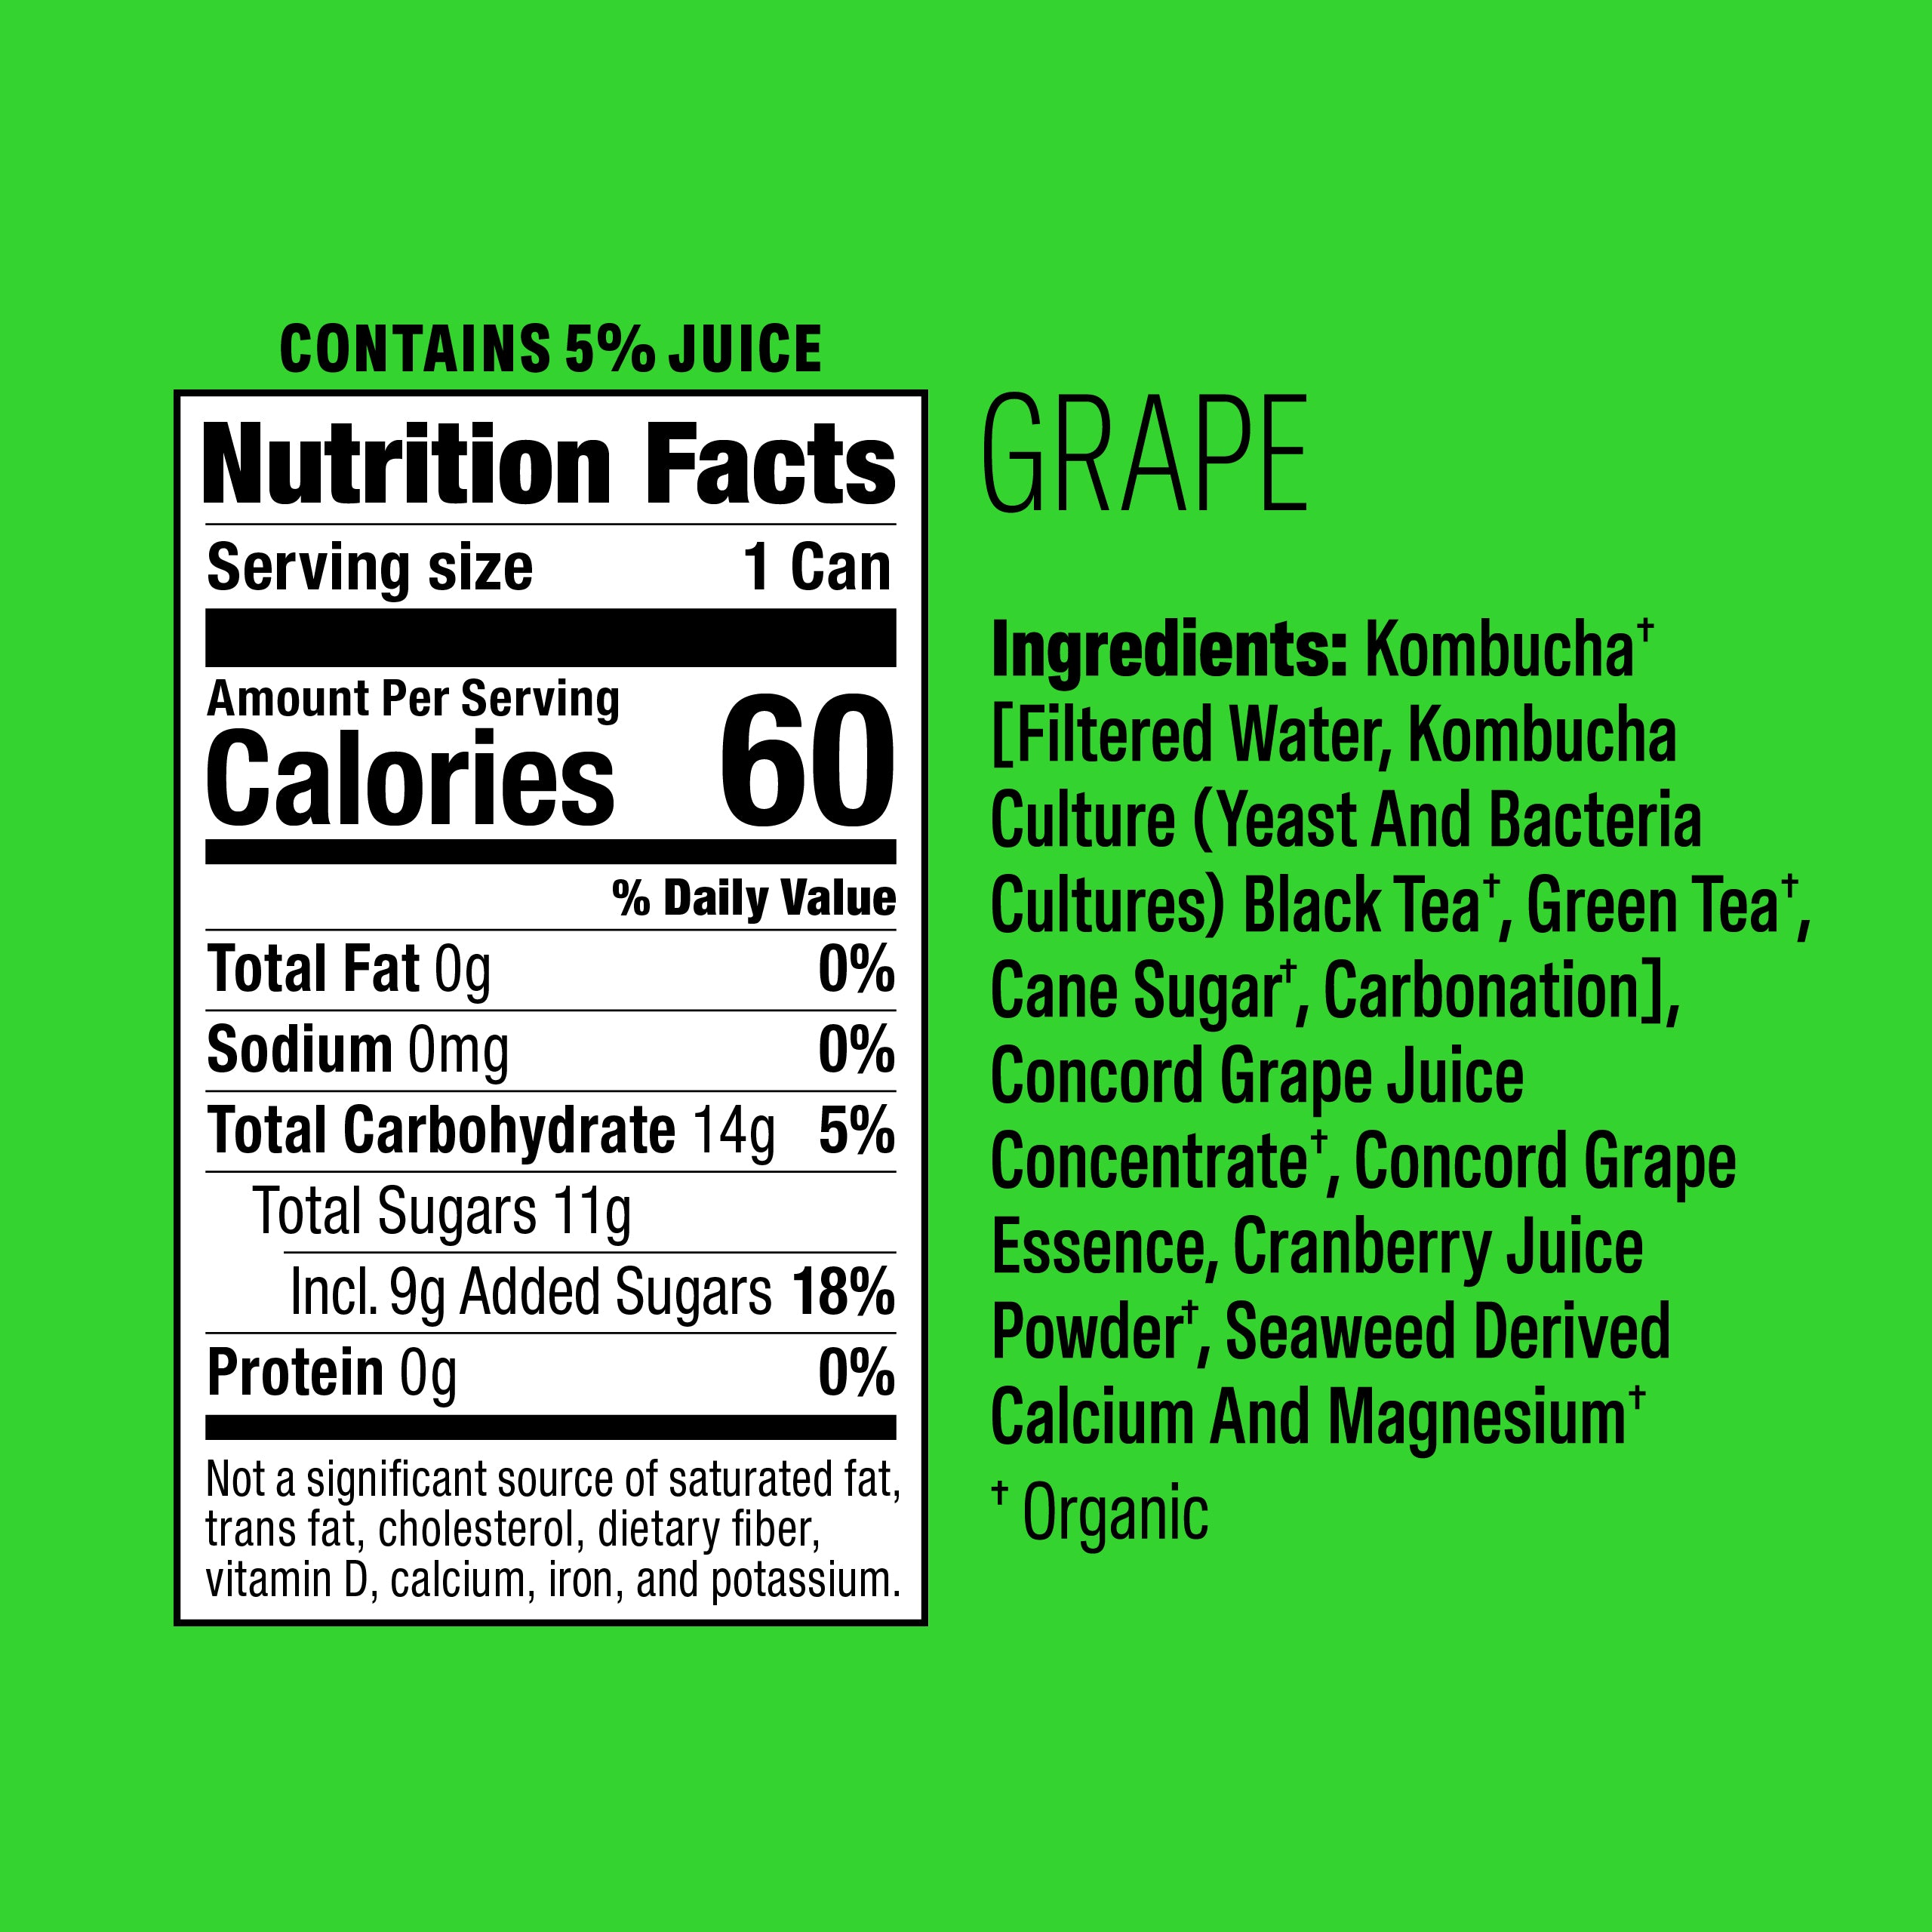 Grape Nutritional Fact